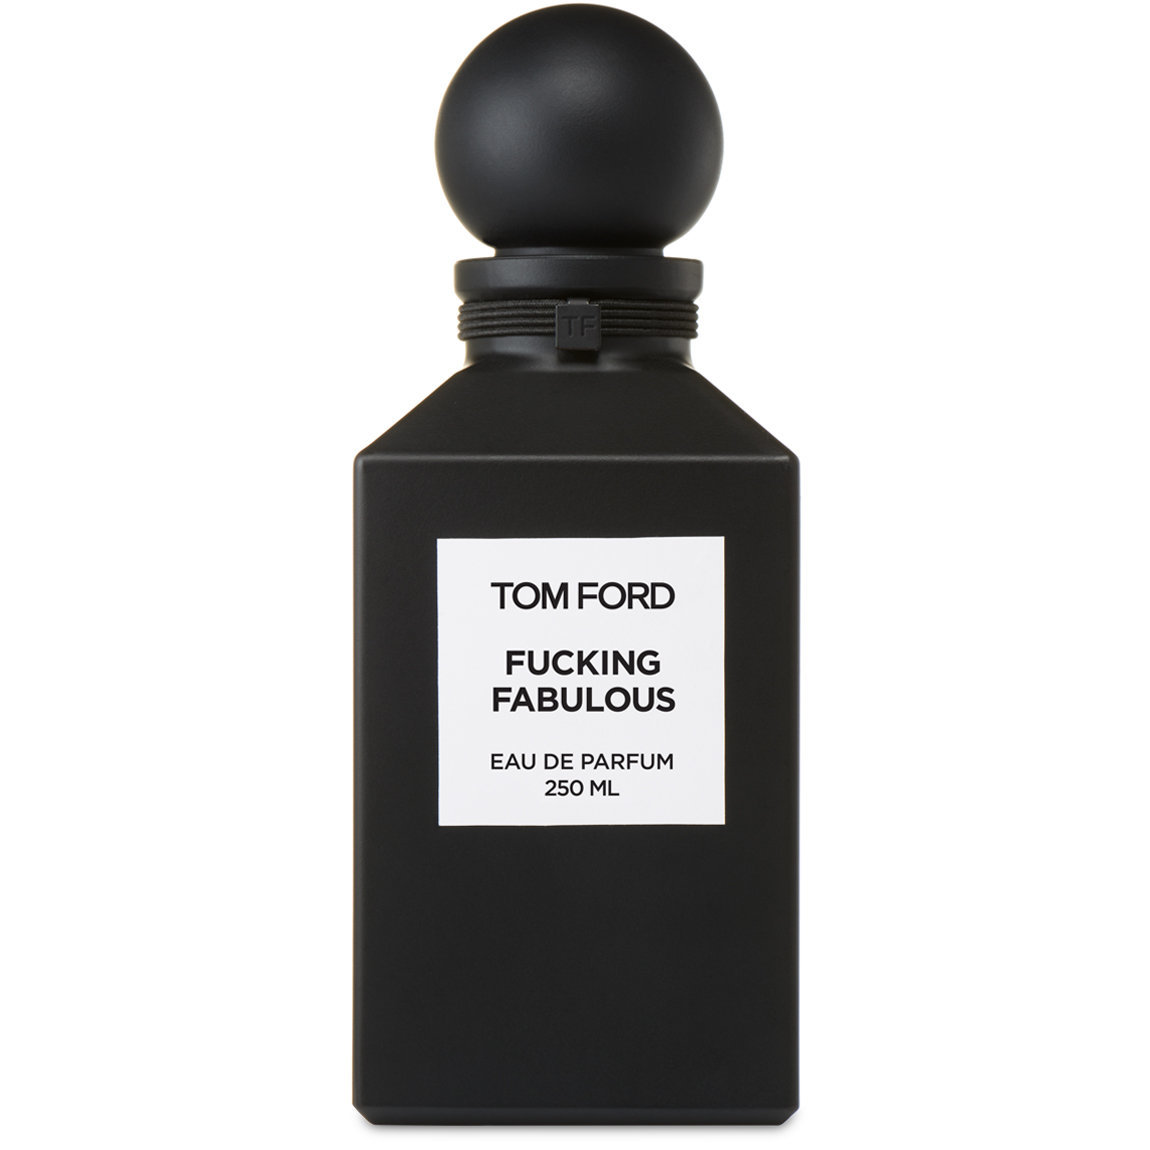 TOM FORD Fucking Fabulous 250 ml